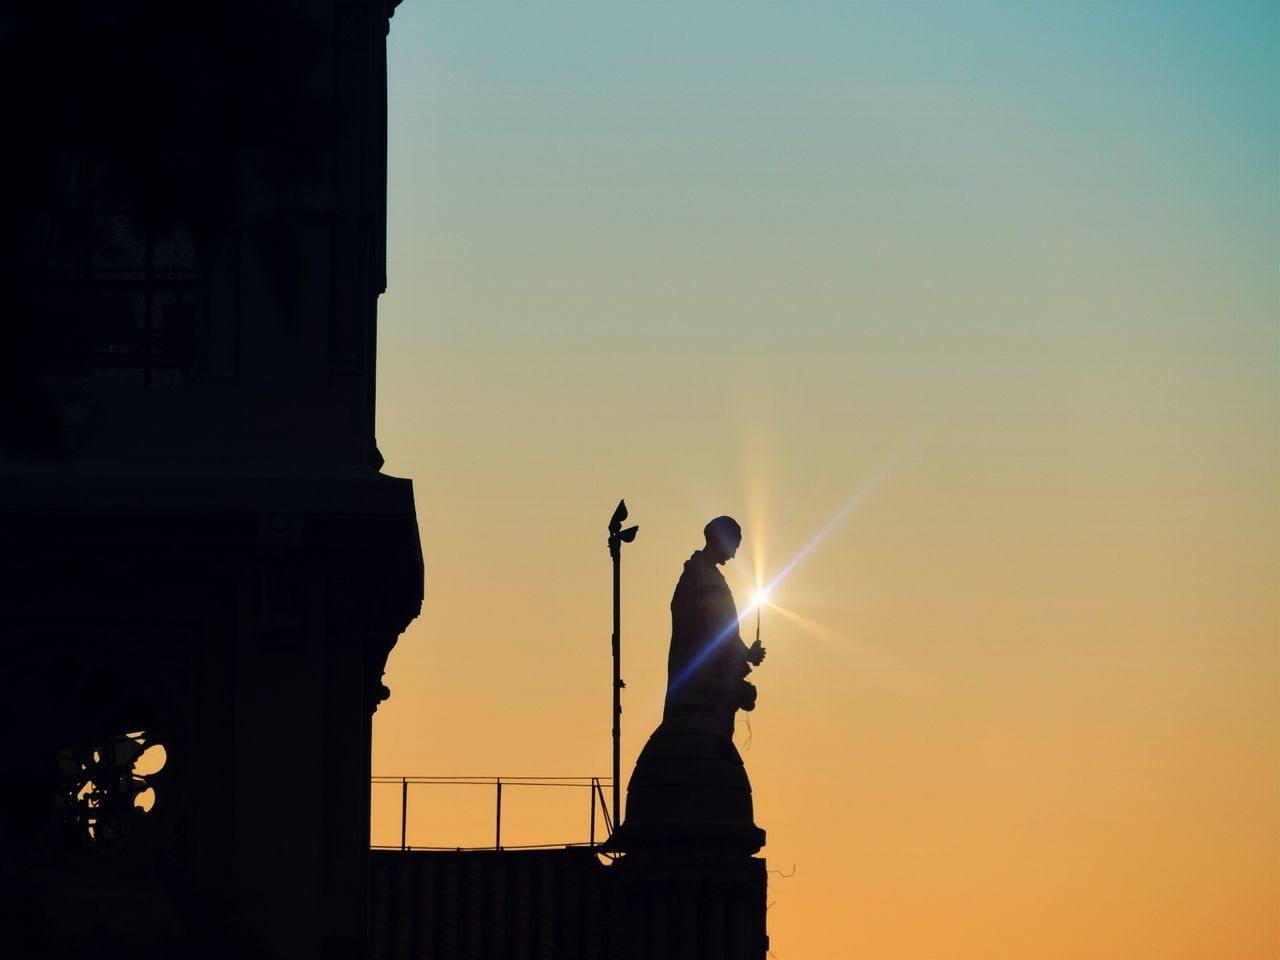 Mine silhuettes Silhouette One Man Only Sunset Beauty In Nature Magic Moments Magic Wand Monk  Person Silhouette Magic Light Magic Backgrounds Church Architecture Church Statue Statue Silhouette Silhouettes Of Sunset Religious  Religion Religious Art Religious Icons Religious Place Religious Statues